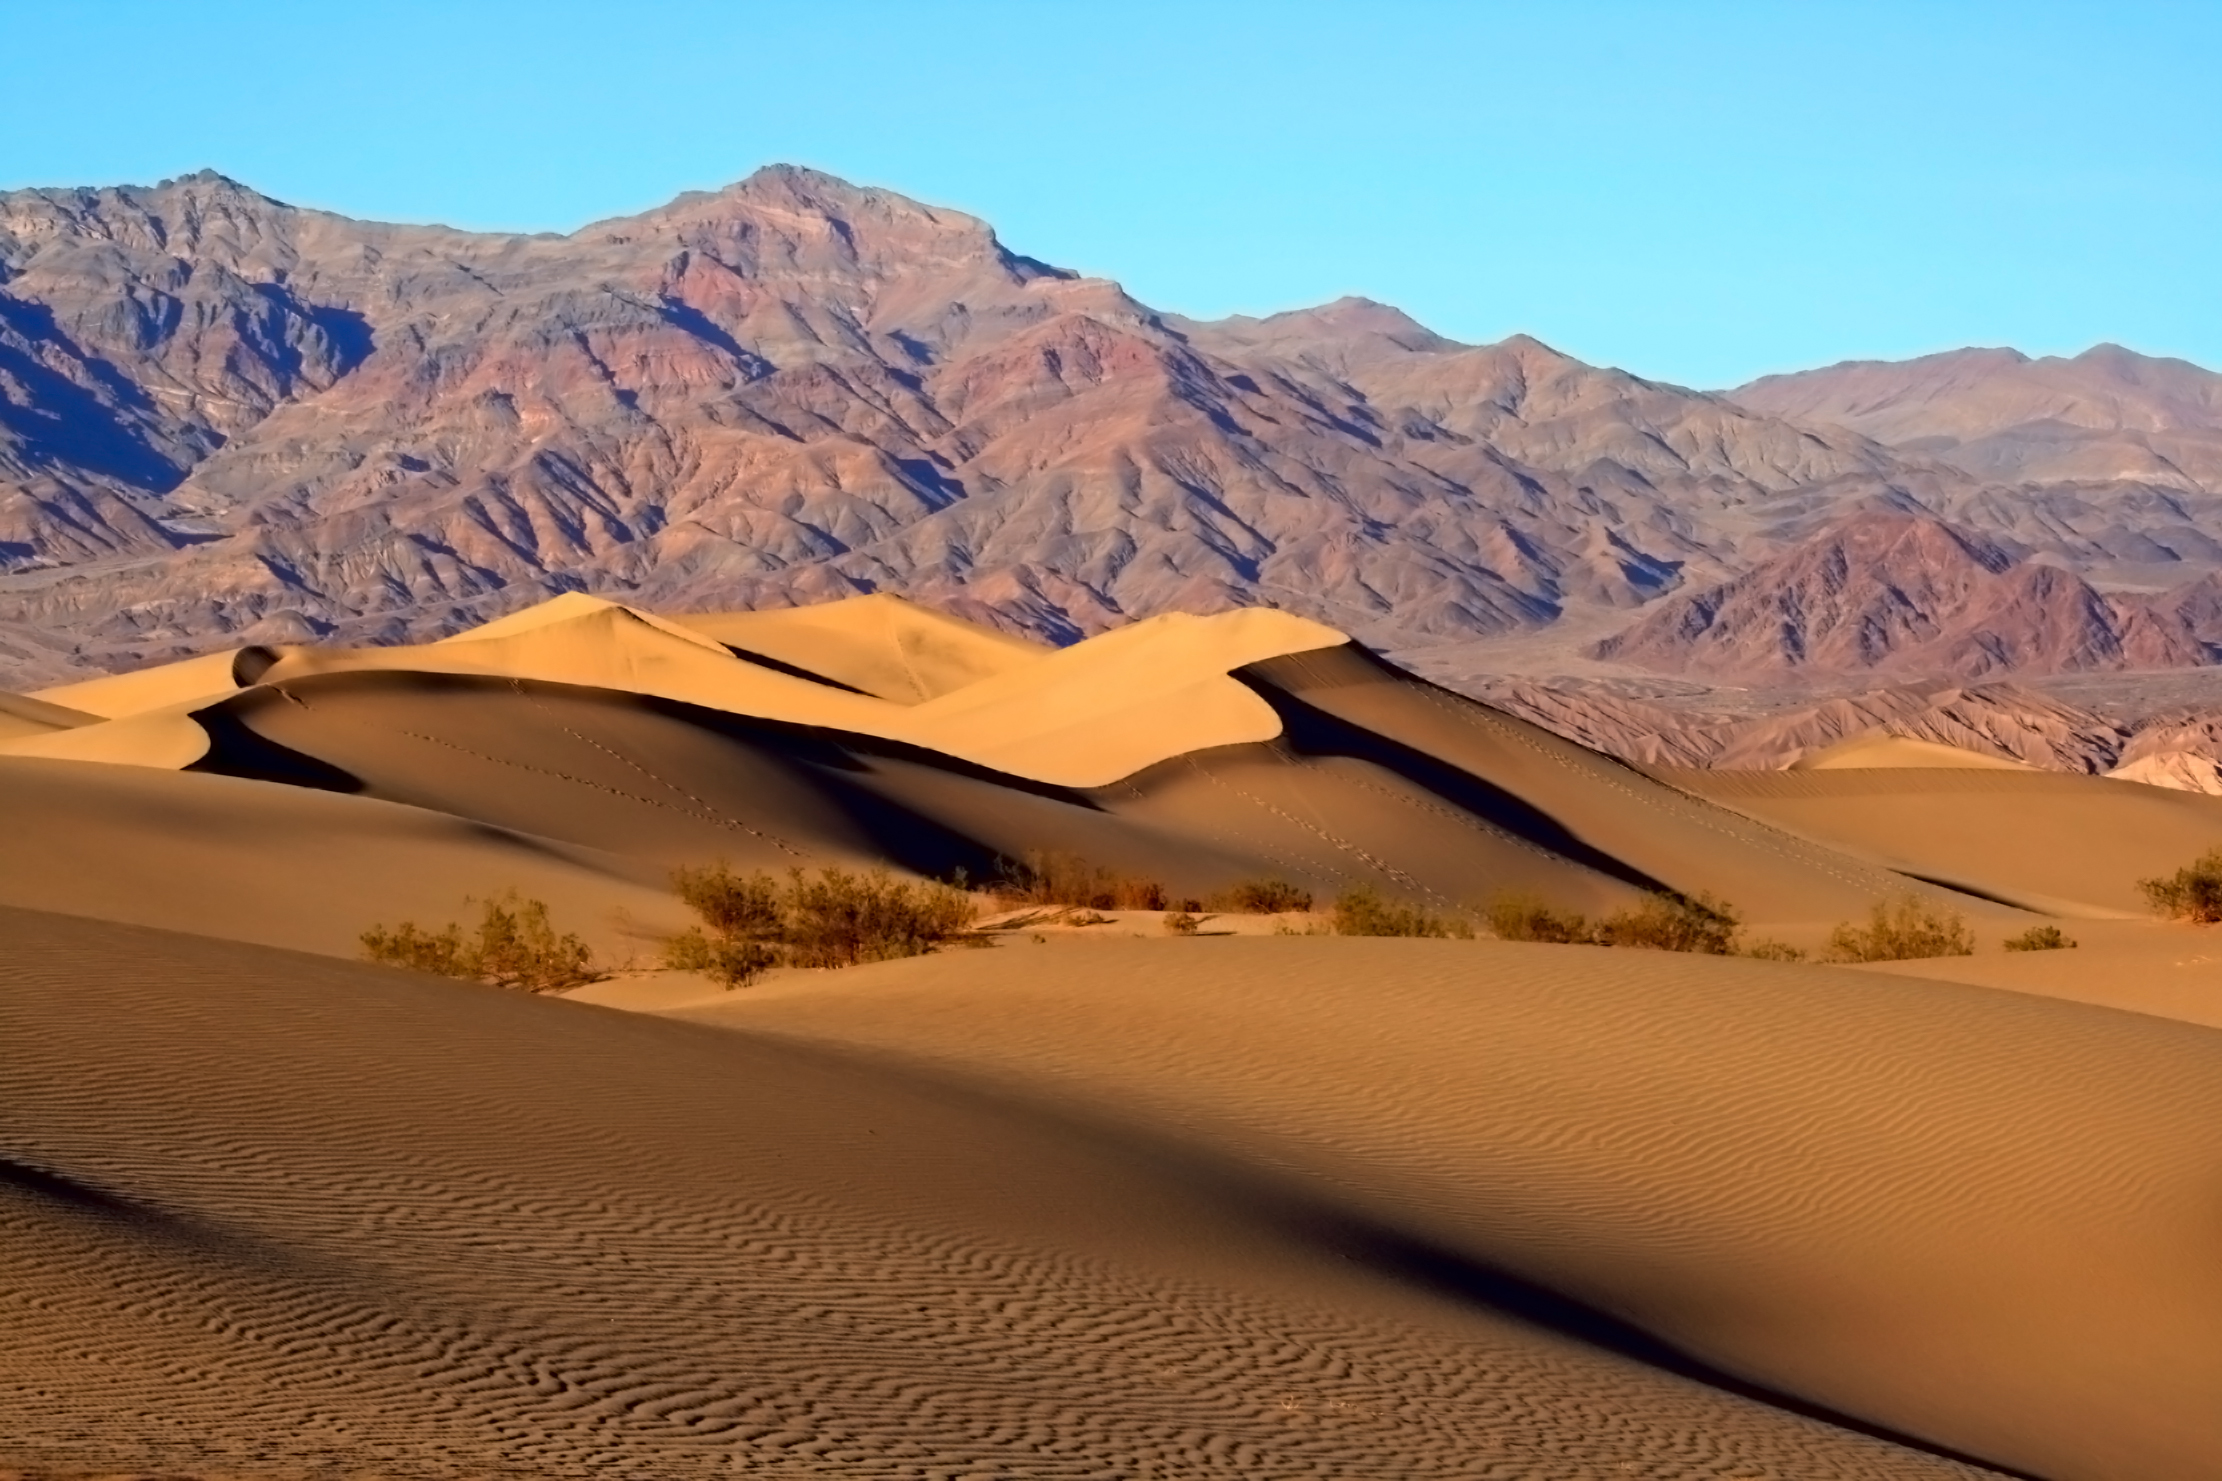 https://upload.wikimedia.org/wikipedia/commons/8/87/Mesquite_Sand_Dunes_in_Death_Valley.jpg